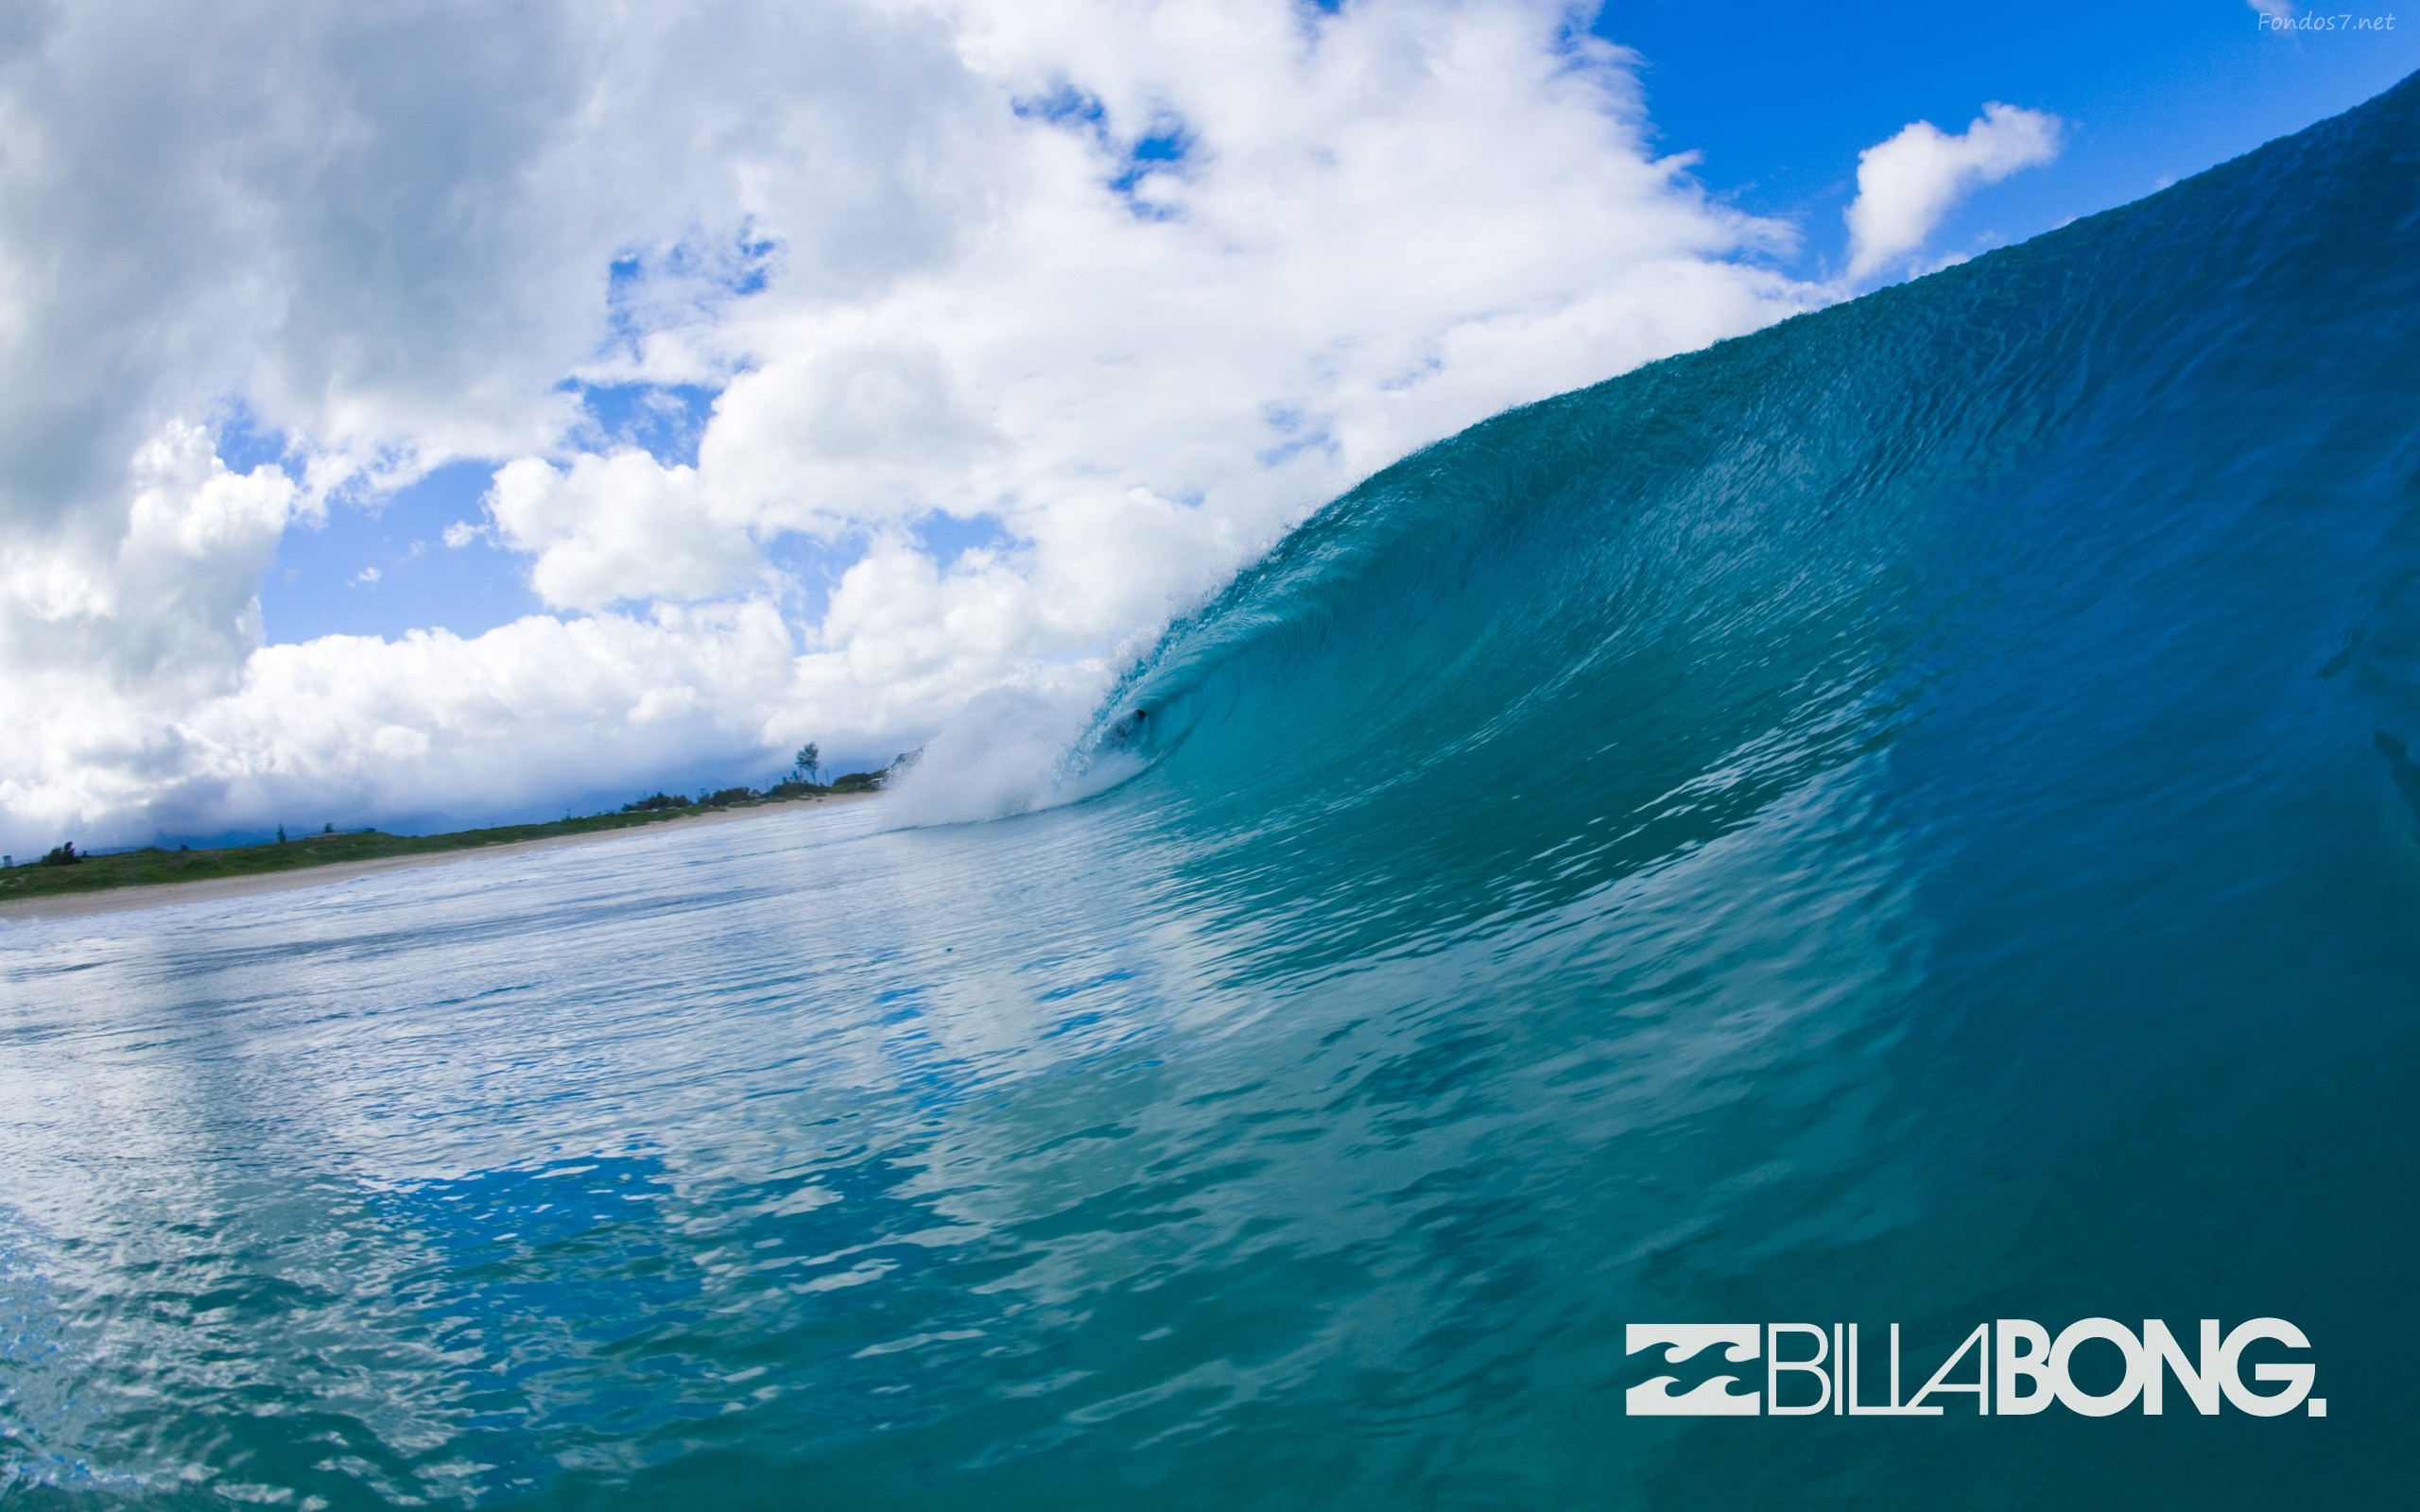 Billabong Wallpaper Hd Images Pictures   Becuo 2560x1600